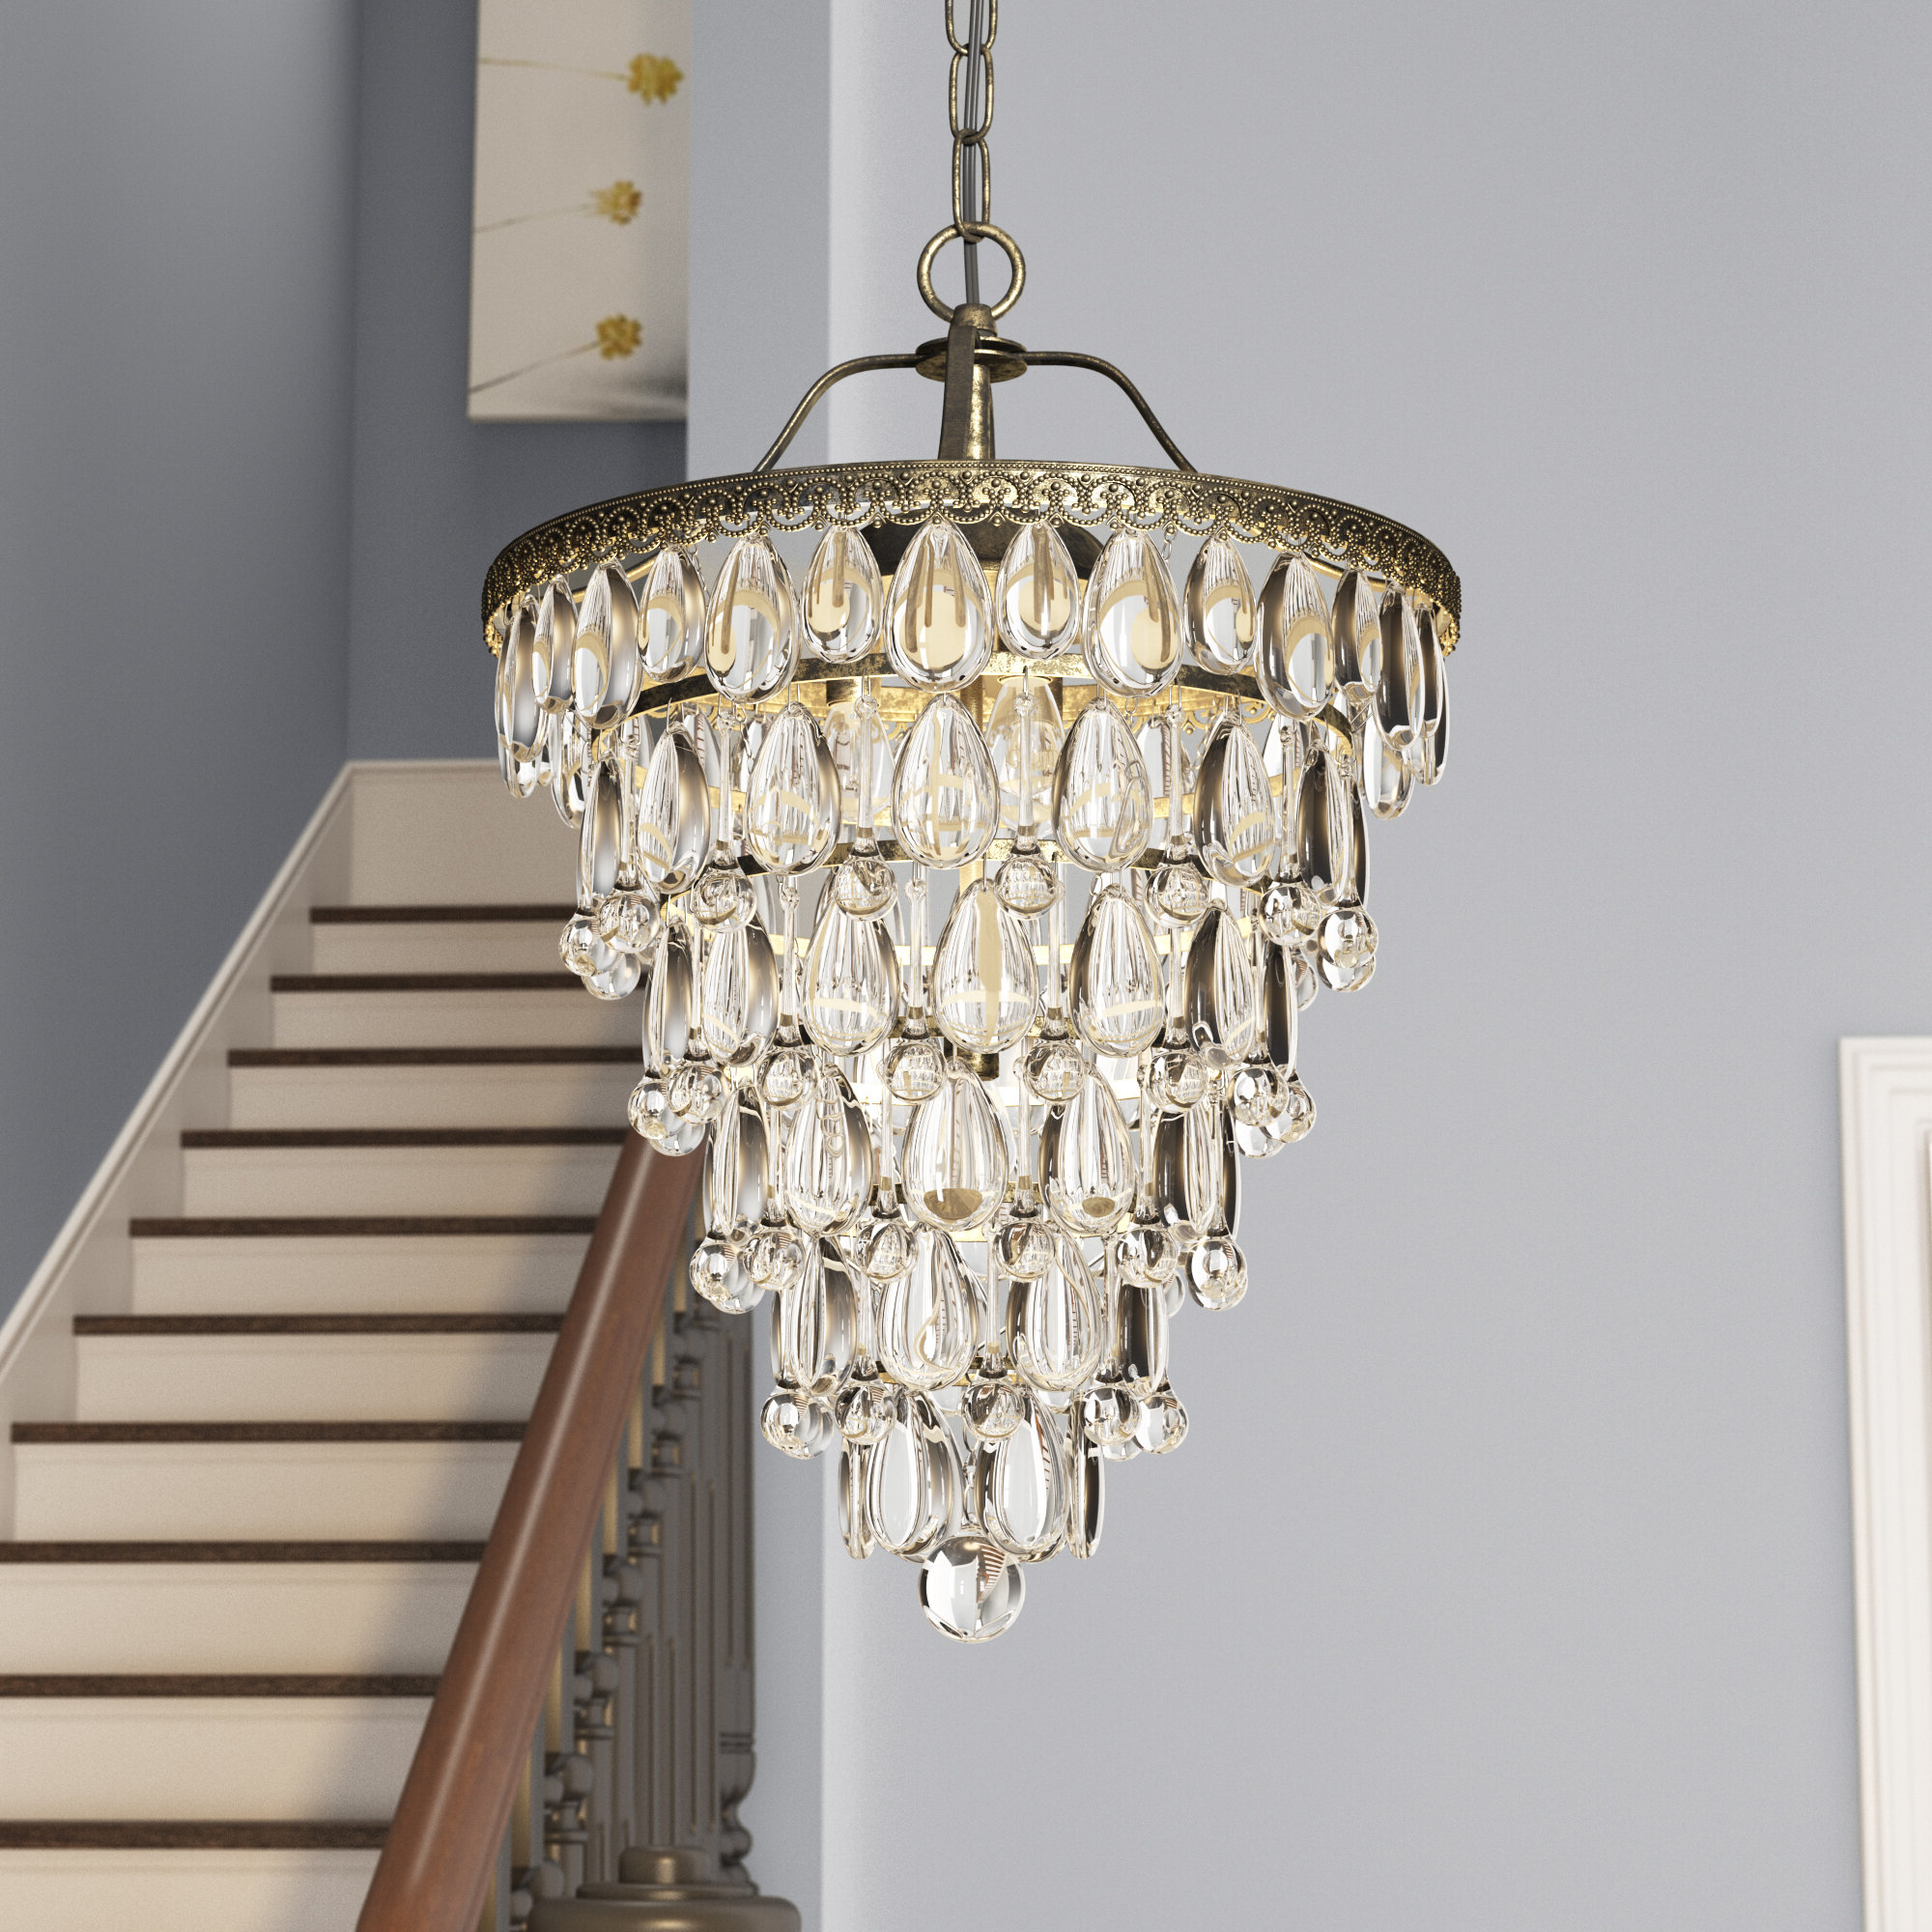 5 Light Crystal Chandelier (View 3 of 20)